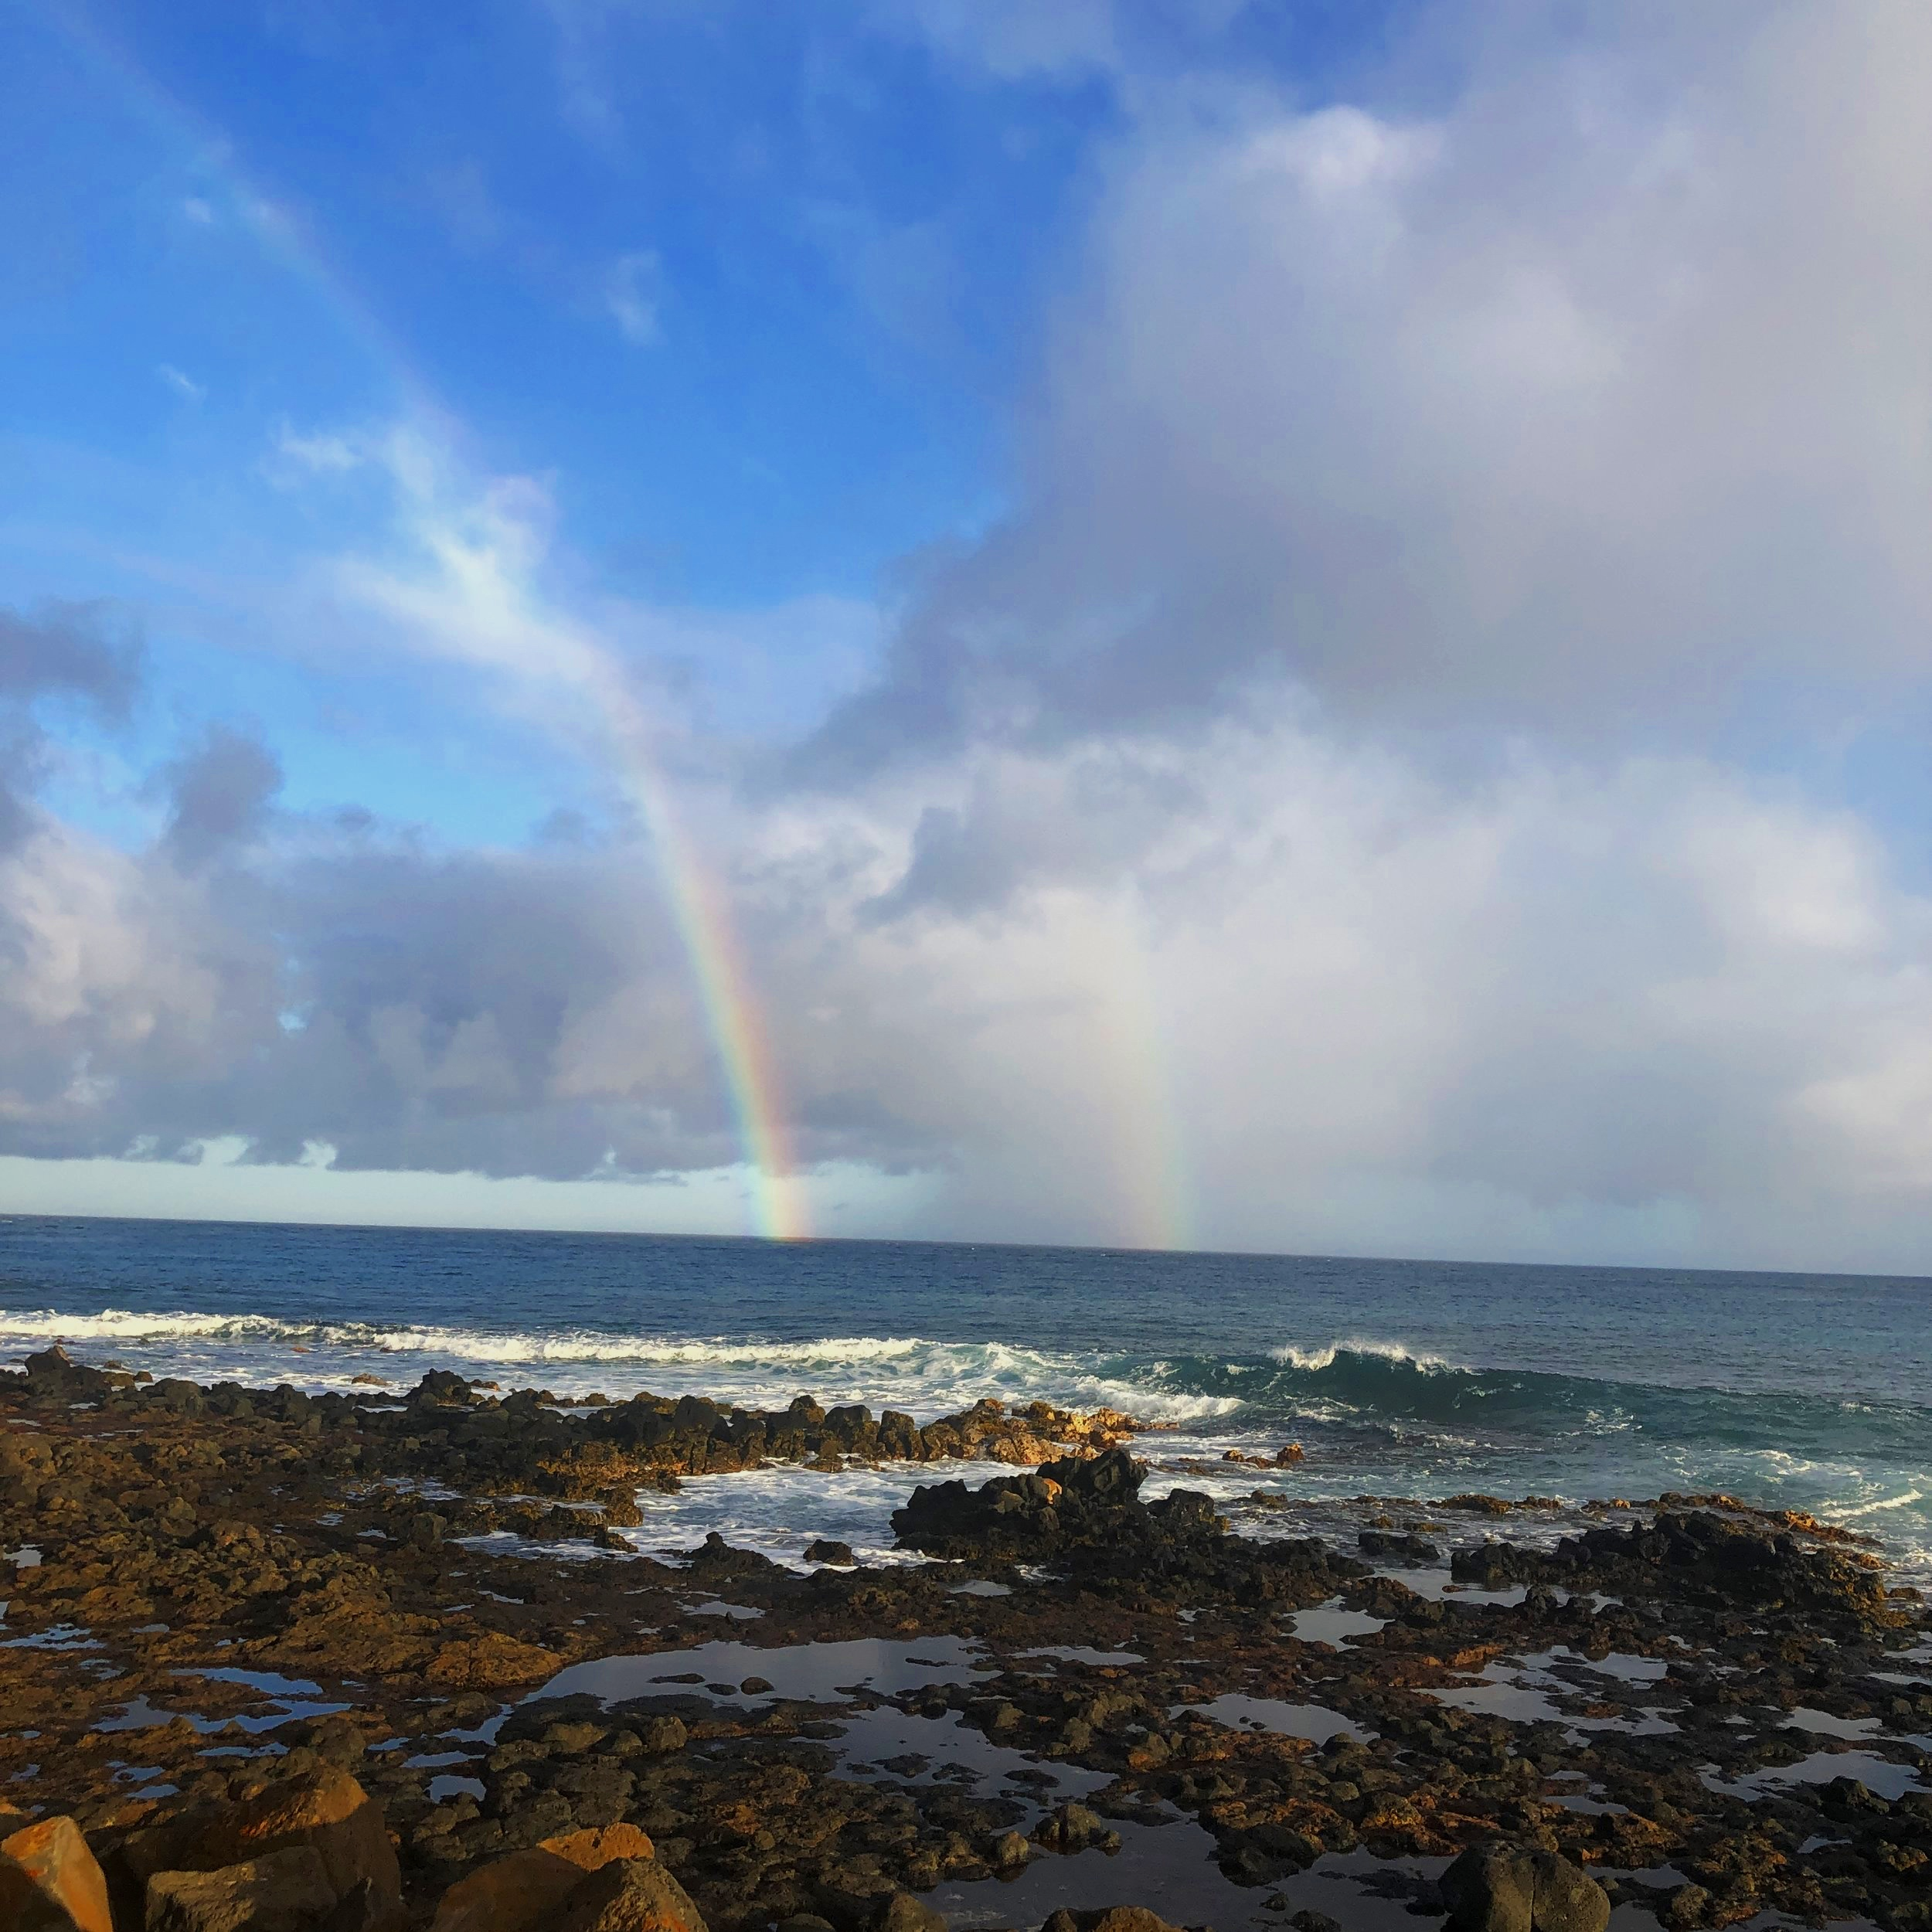 A double rainbow over the South Pacific at Poipu Beach Park